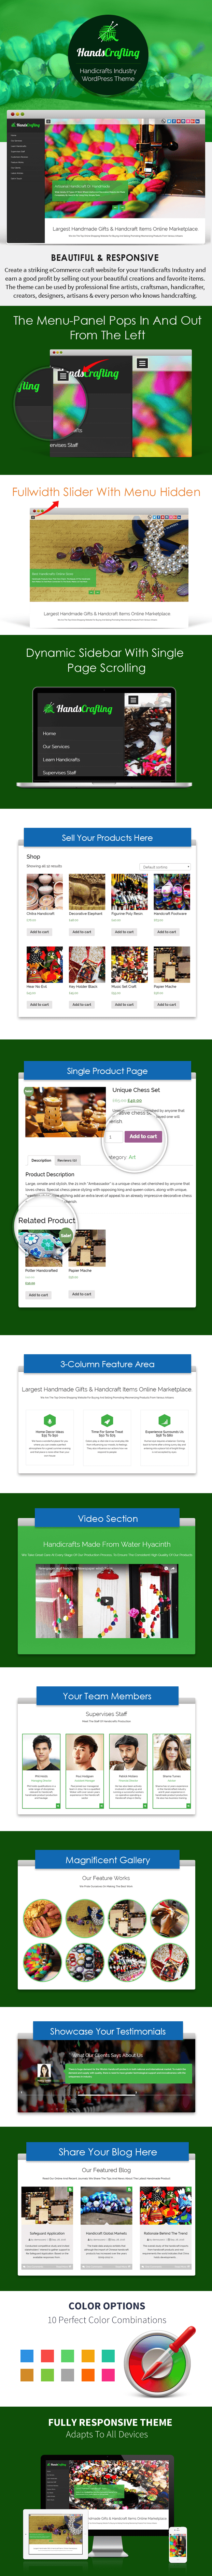 Handicrafts Industry WordPress Theme Sales Page Preview